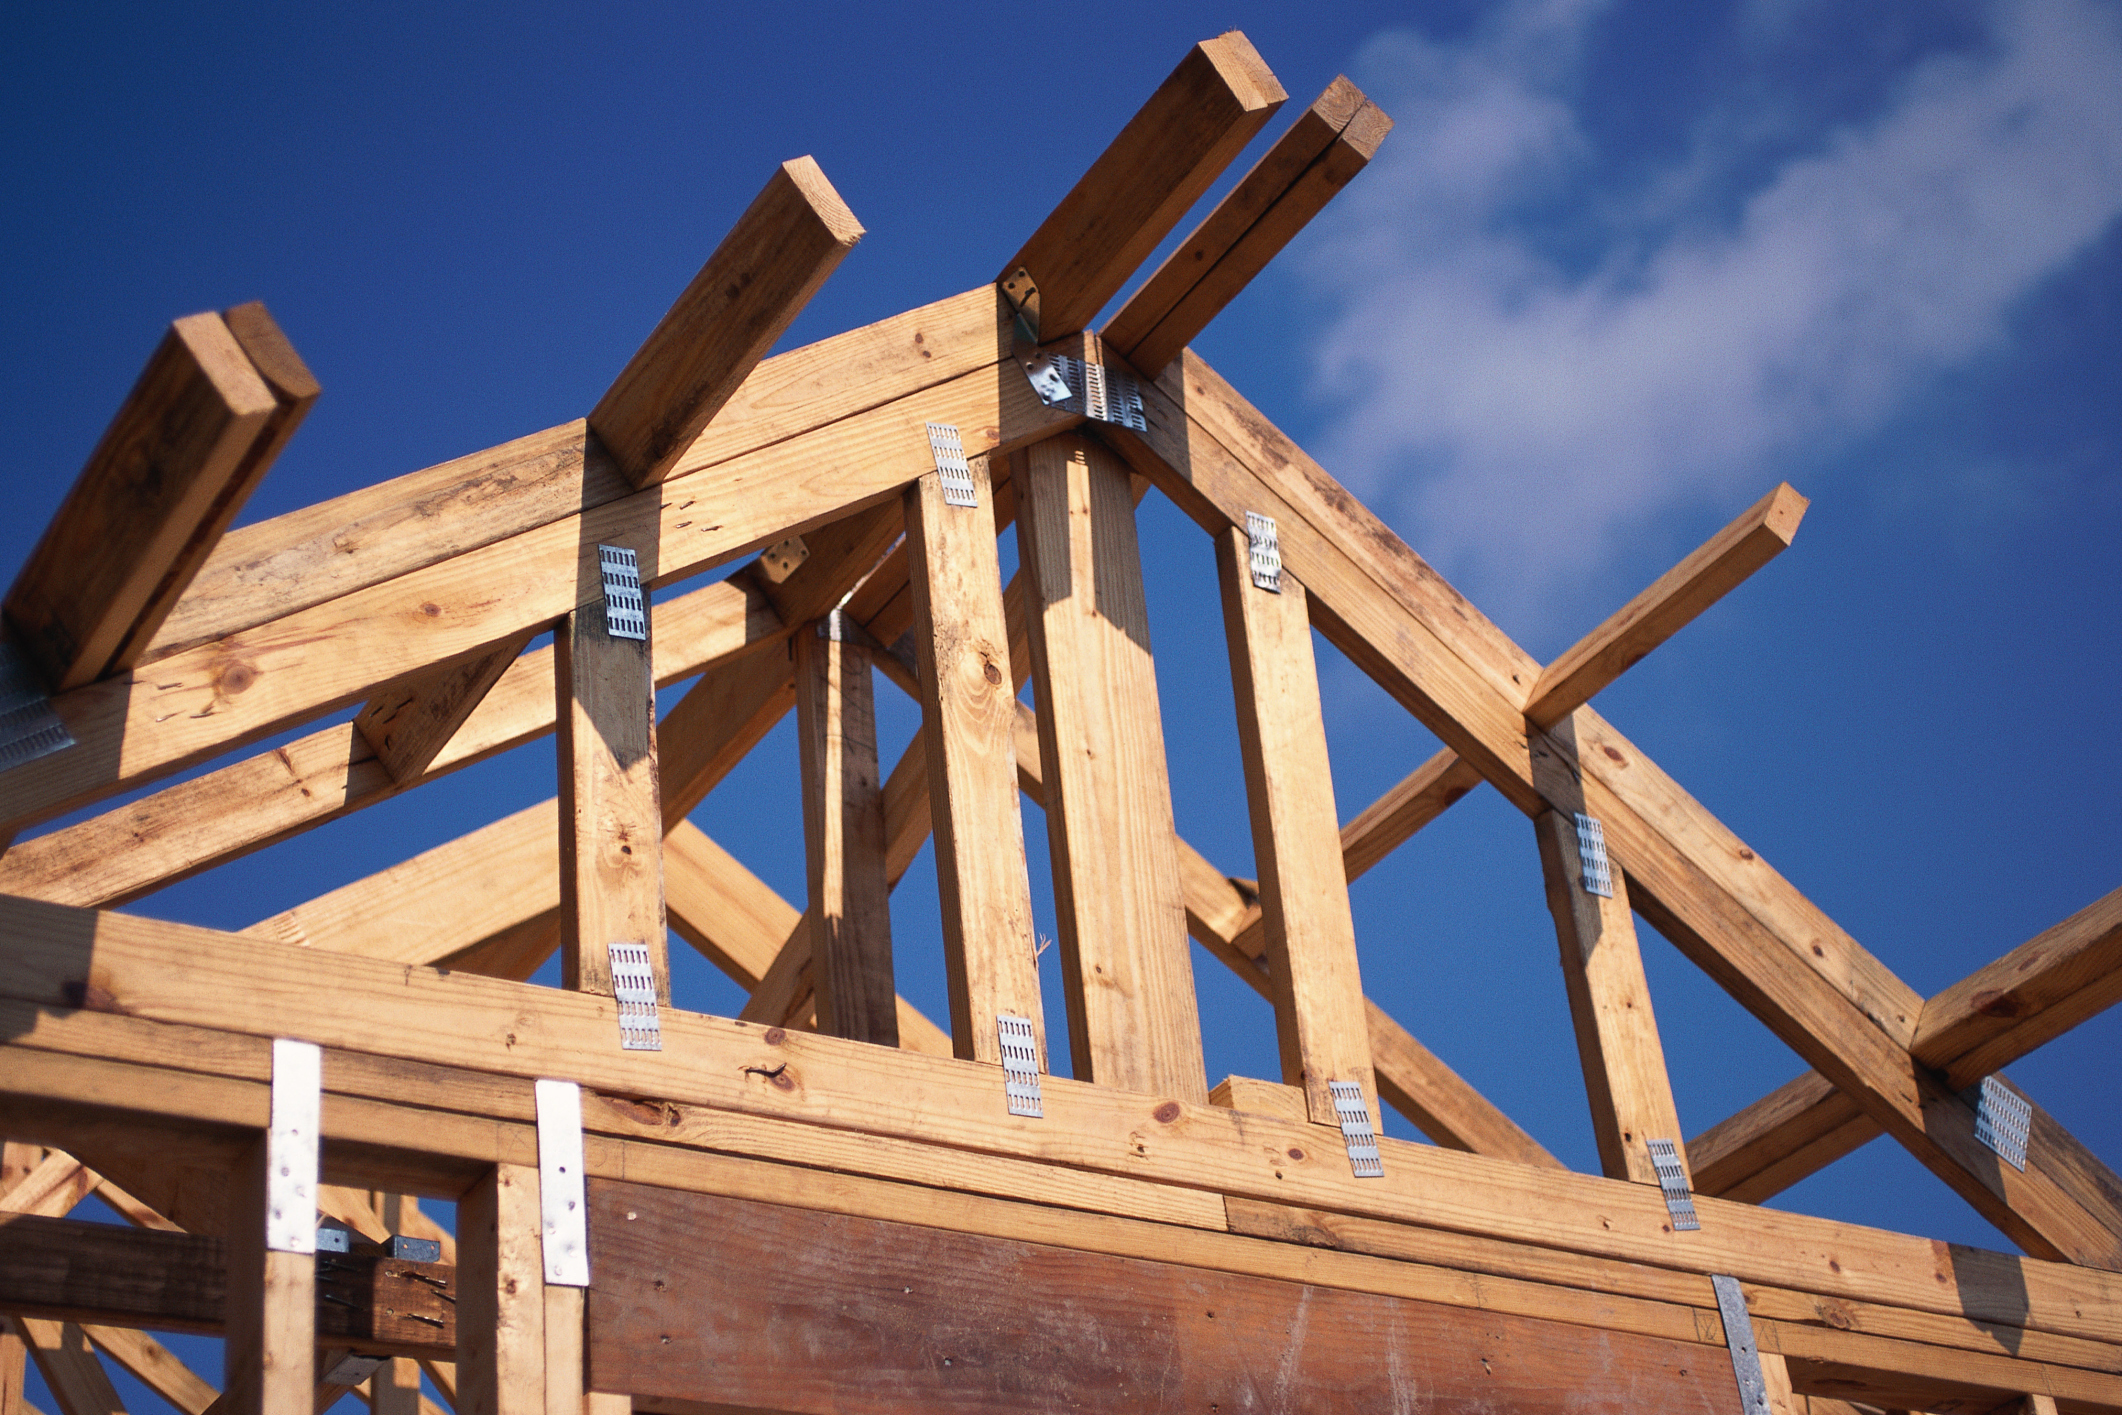 Latest Nhbc Figures Report Christmas Cheer For House Building